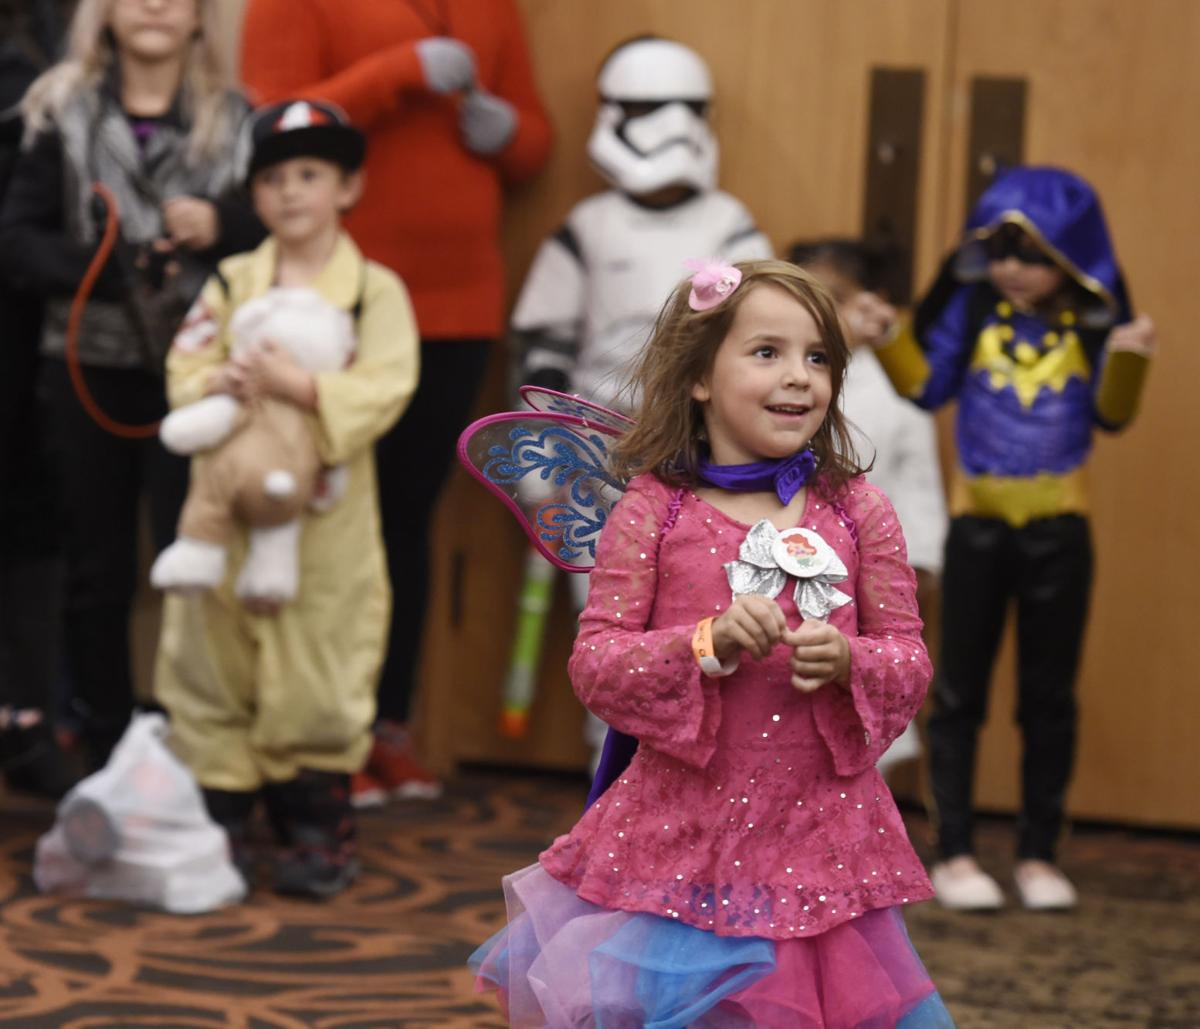 Colorado Springs Comic Con quickly becoming pop culture event of the year